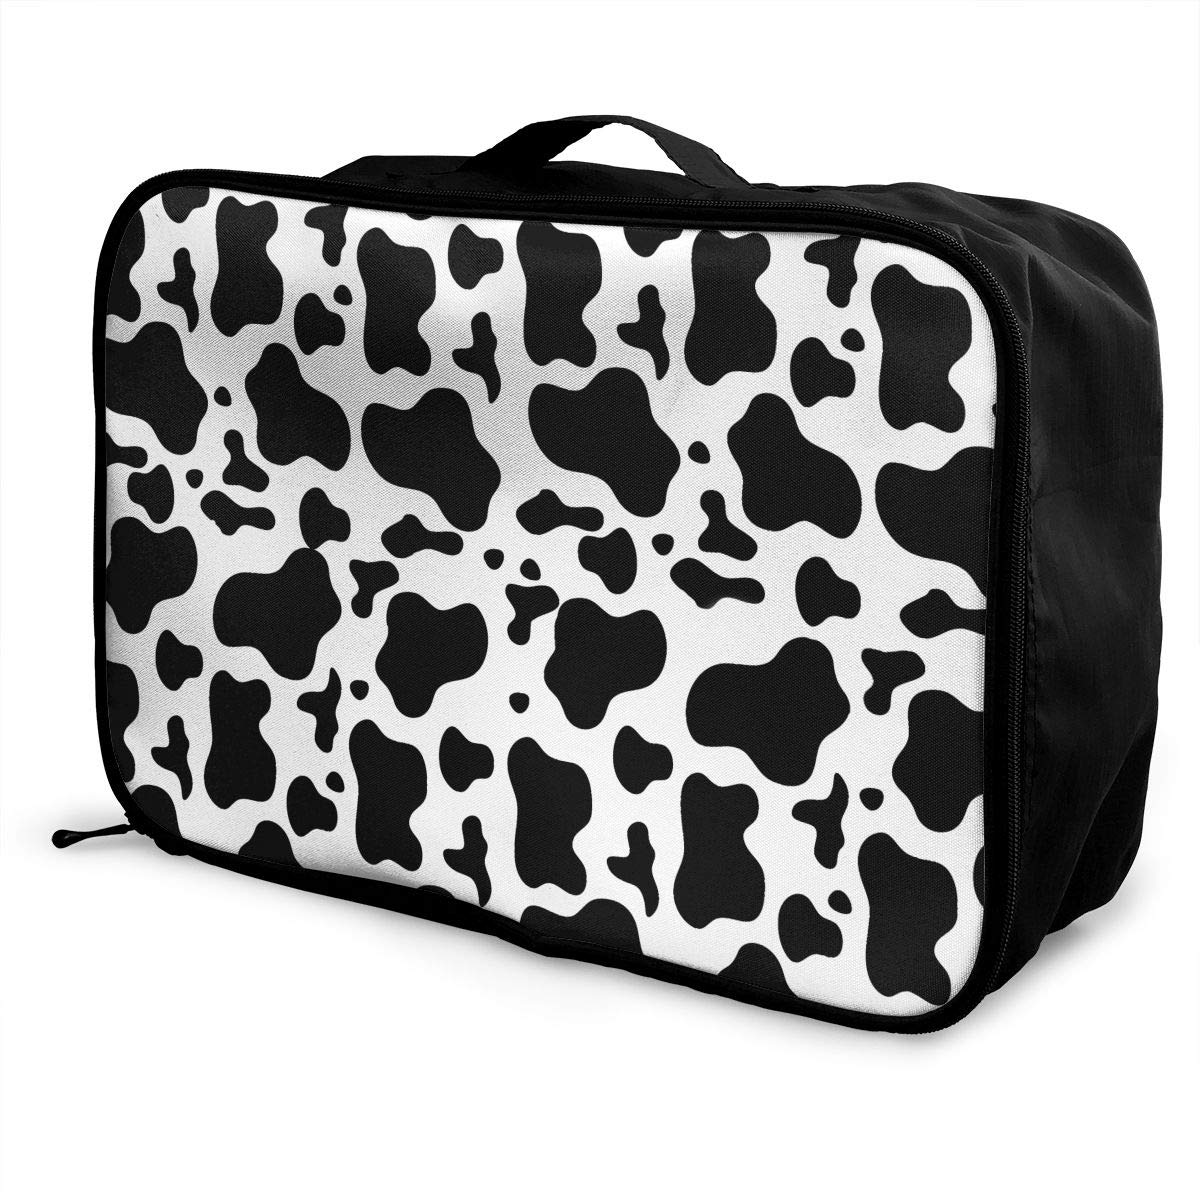 Milk Cow Spots Print Travel Duffel Bag Casual Large Capacity Portable Luggage Bag Suitcase Storage Bag Luggage Packing Tote Bag Weekend Trip